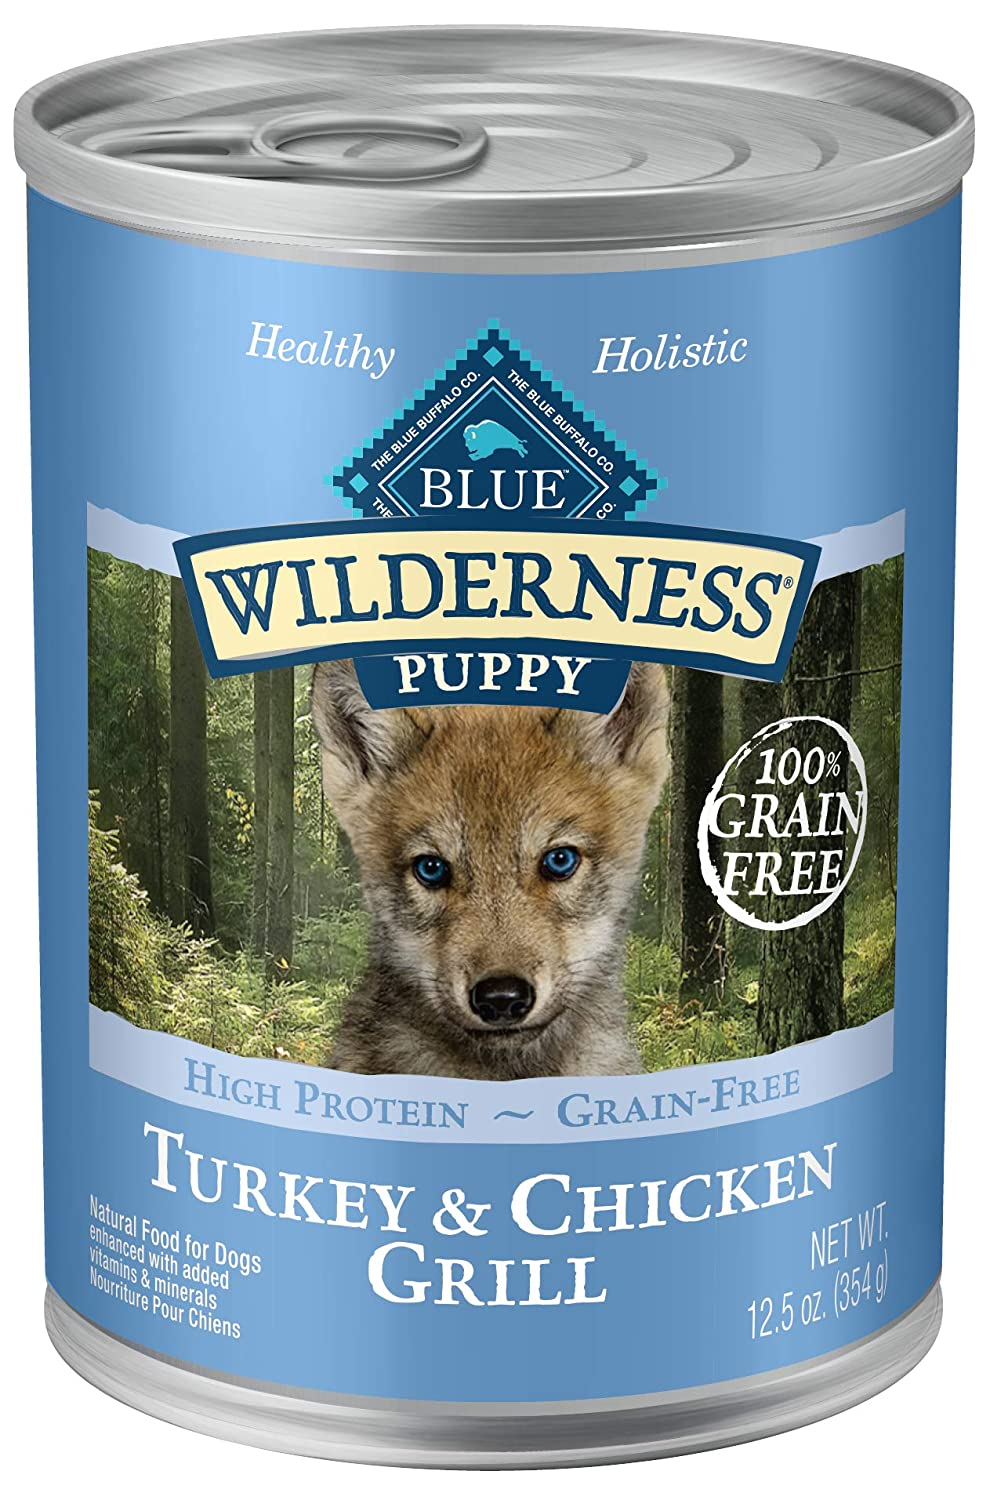 10. Blue Buffalo Wilderness Puppy Canned Dog Food